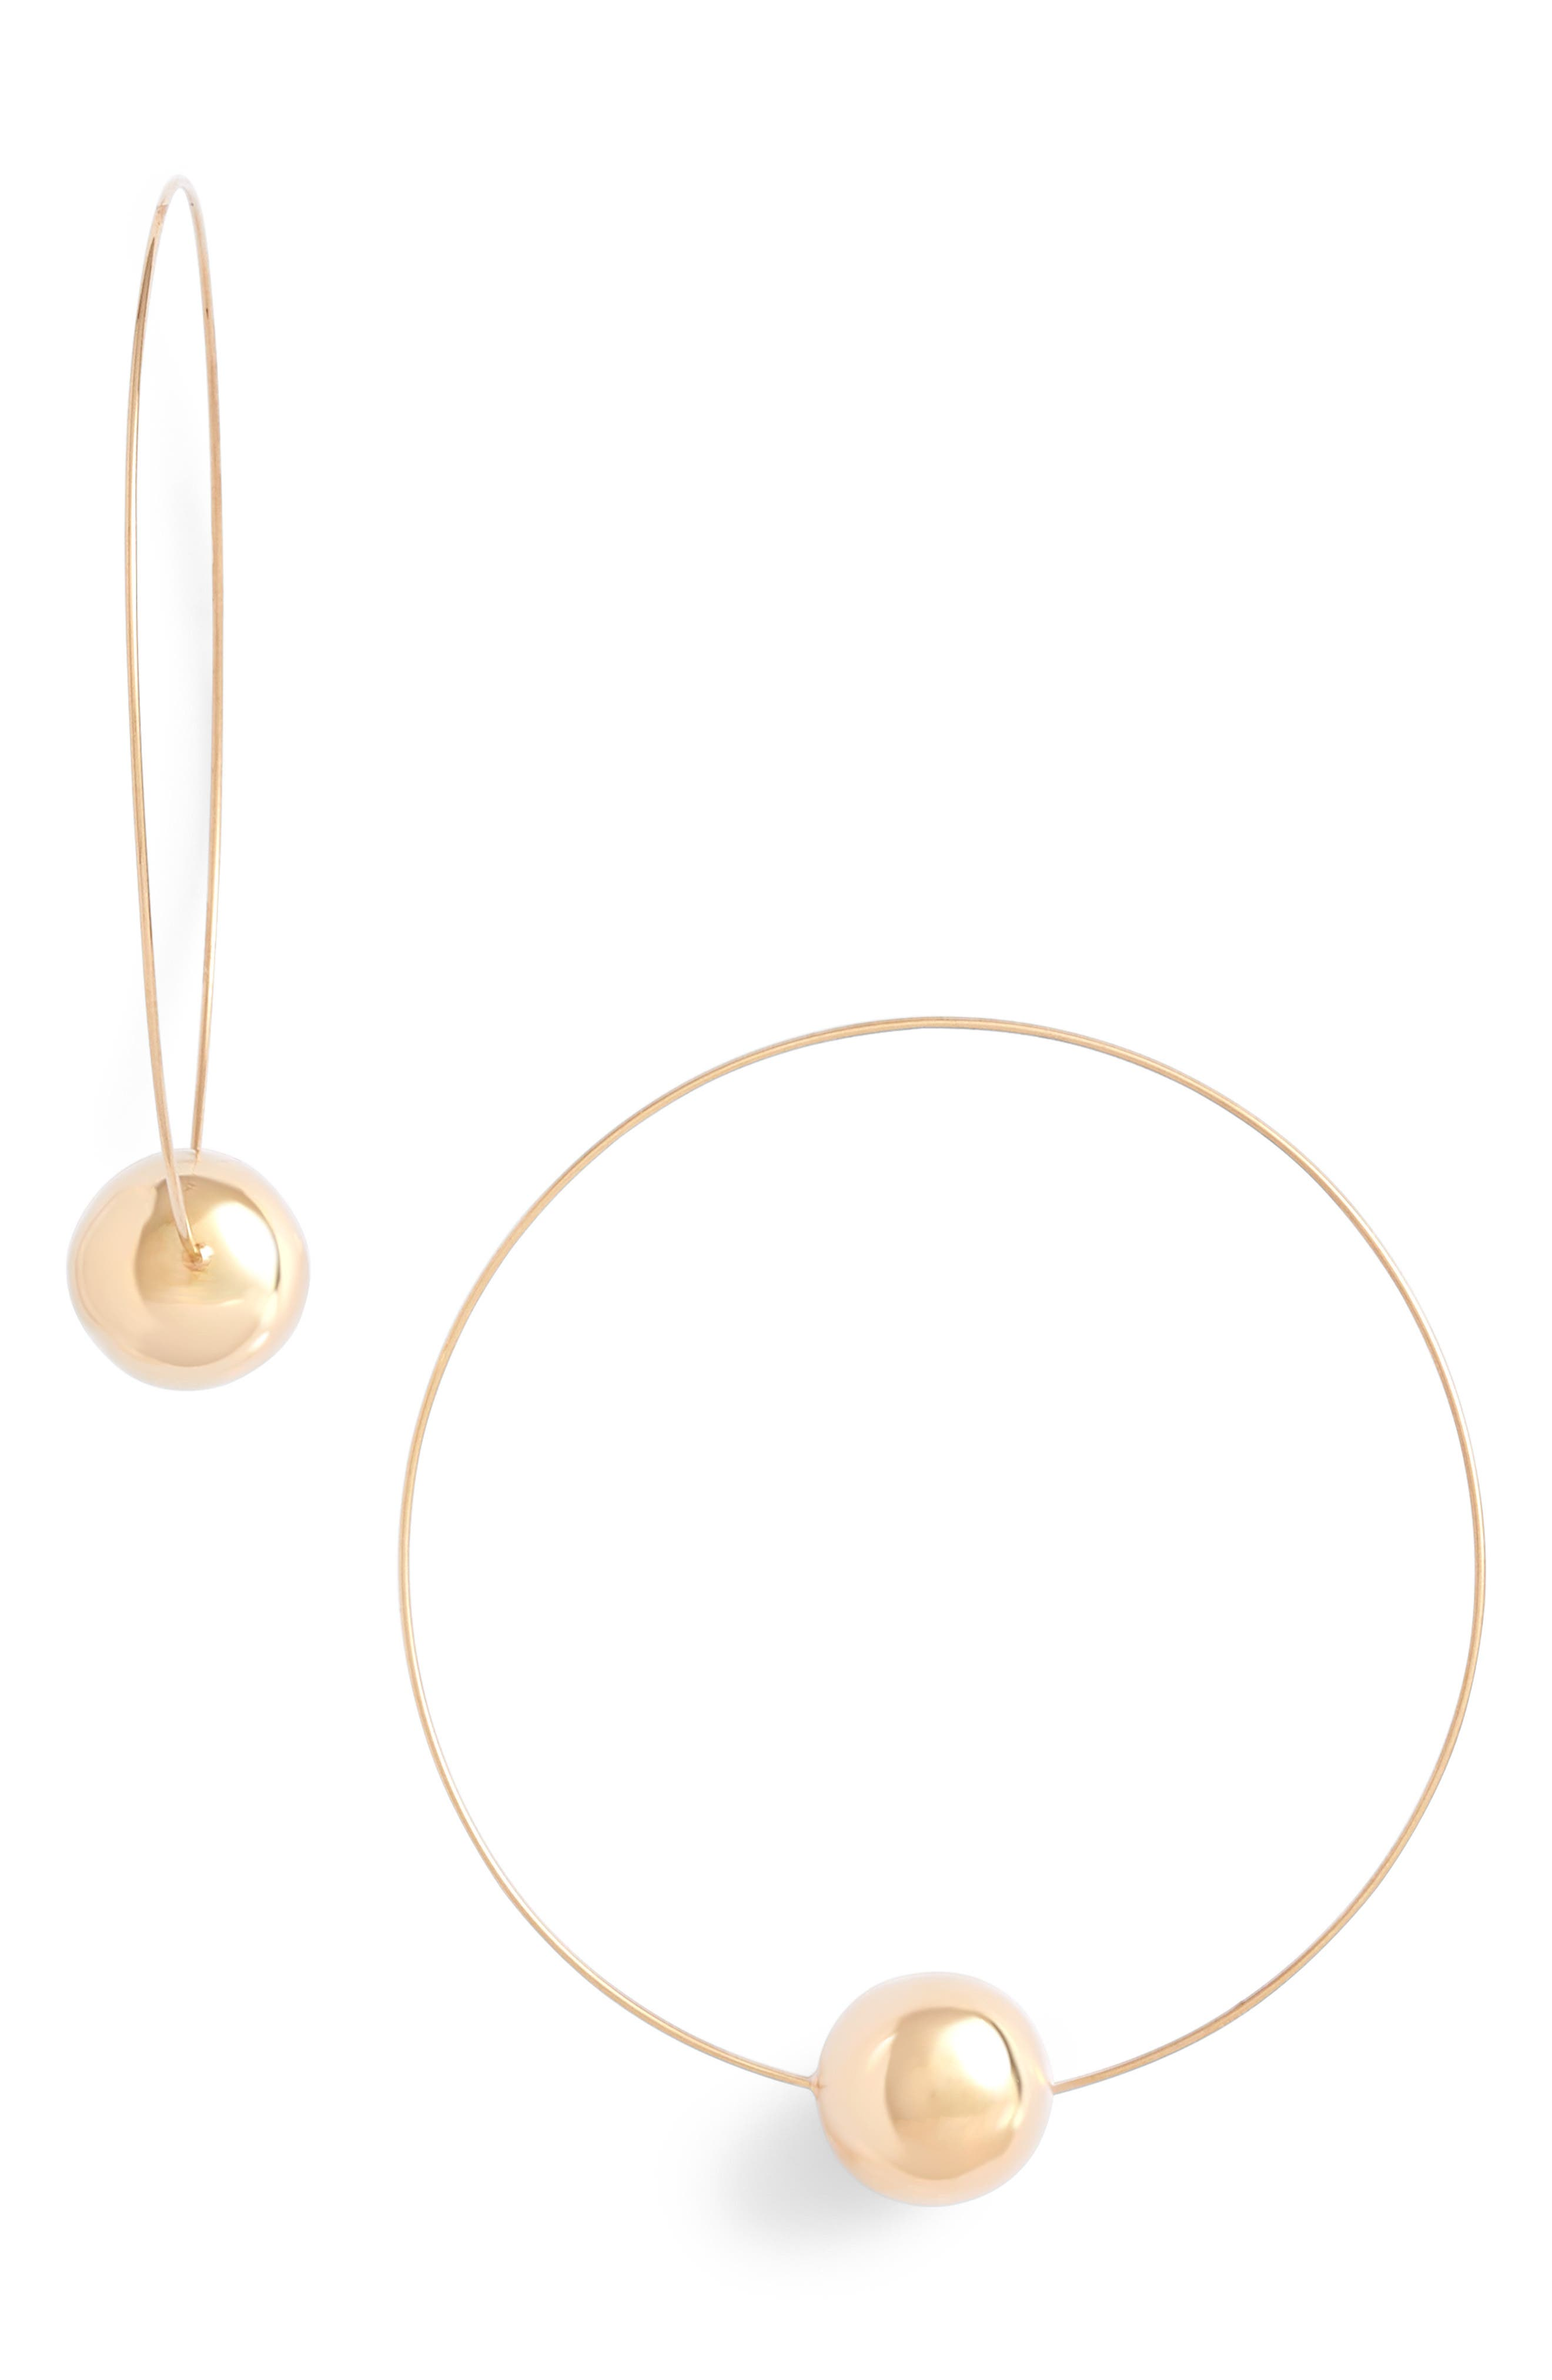 LANA JEWELRY Lana Hollow Ball Magic Wire Continuous Hoop Earrings, Main, color, GOLD